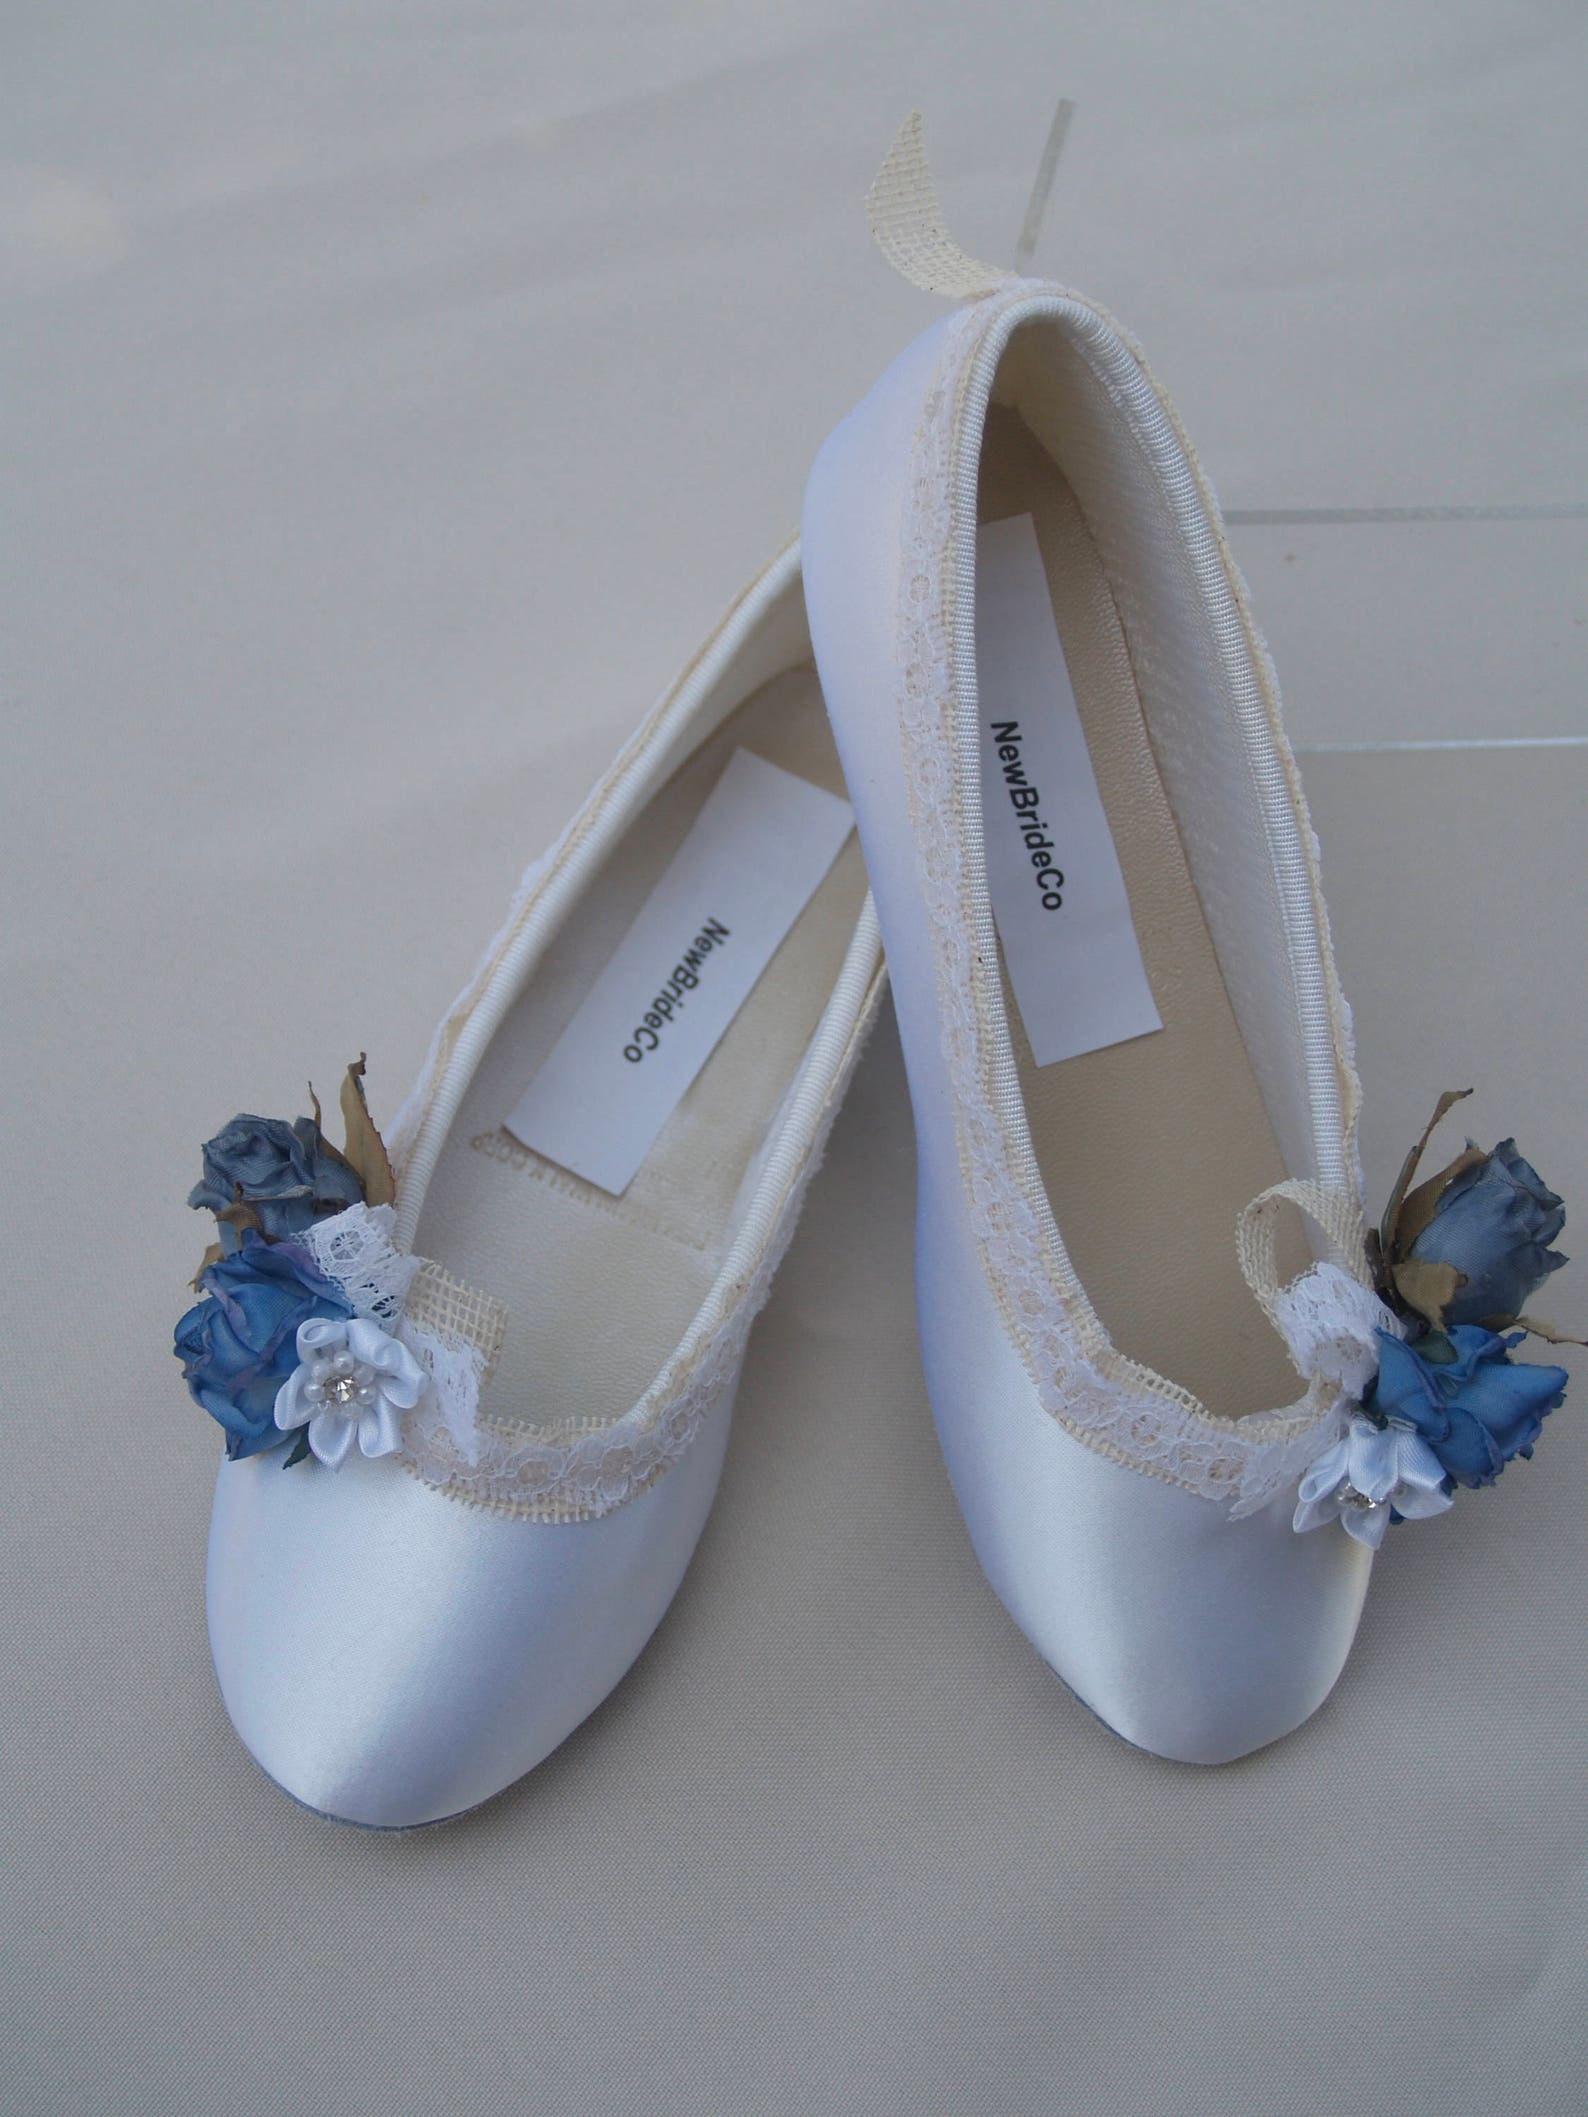 wedding flats blue flowers and burlap edging, ivory or white satin shoes, something blue wedding flats, lace up ribbon, ballet s